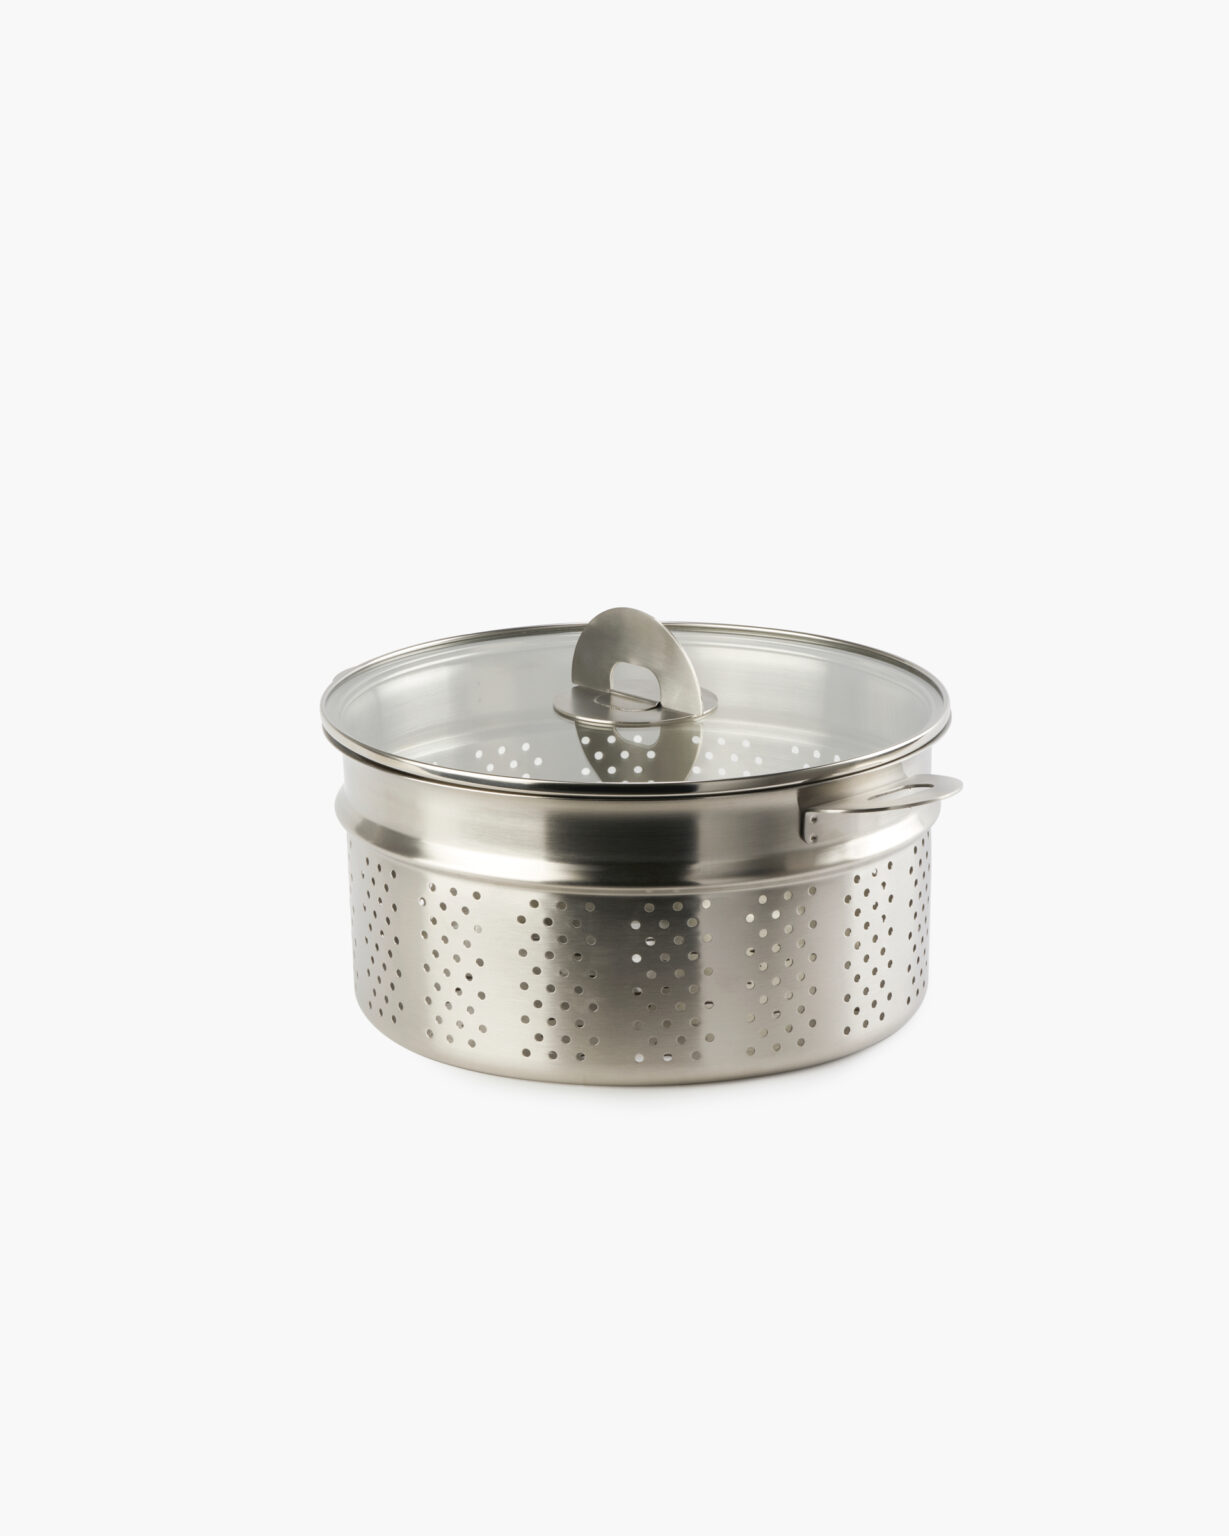 ENSEMBL Stackware Stainless Steel Fully Clad Cookware Steamer Colander